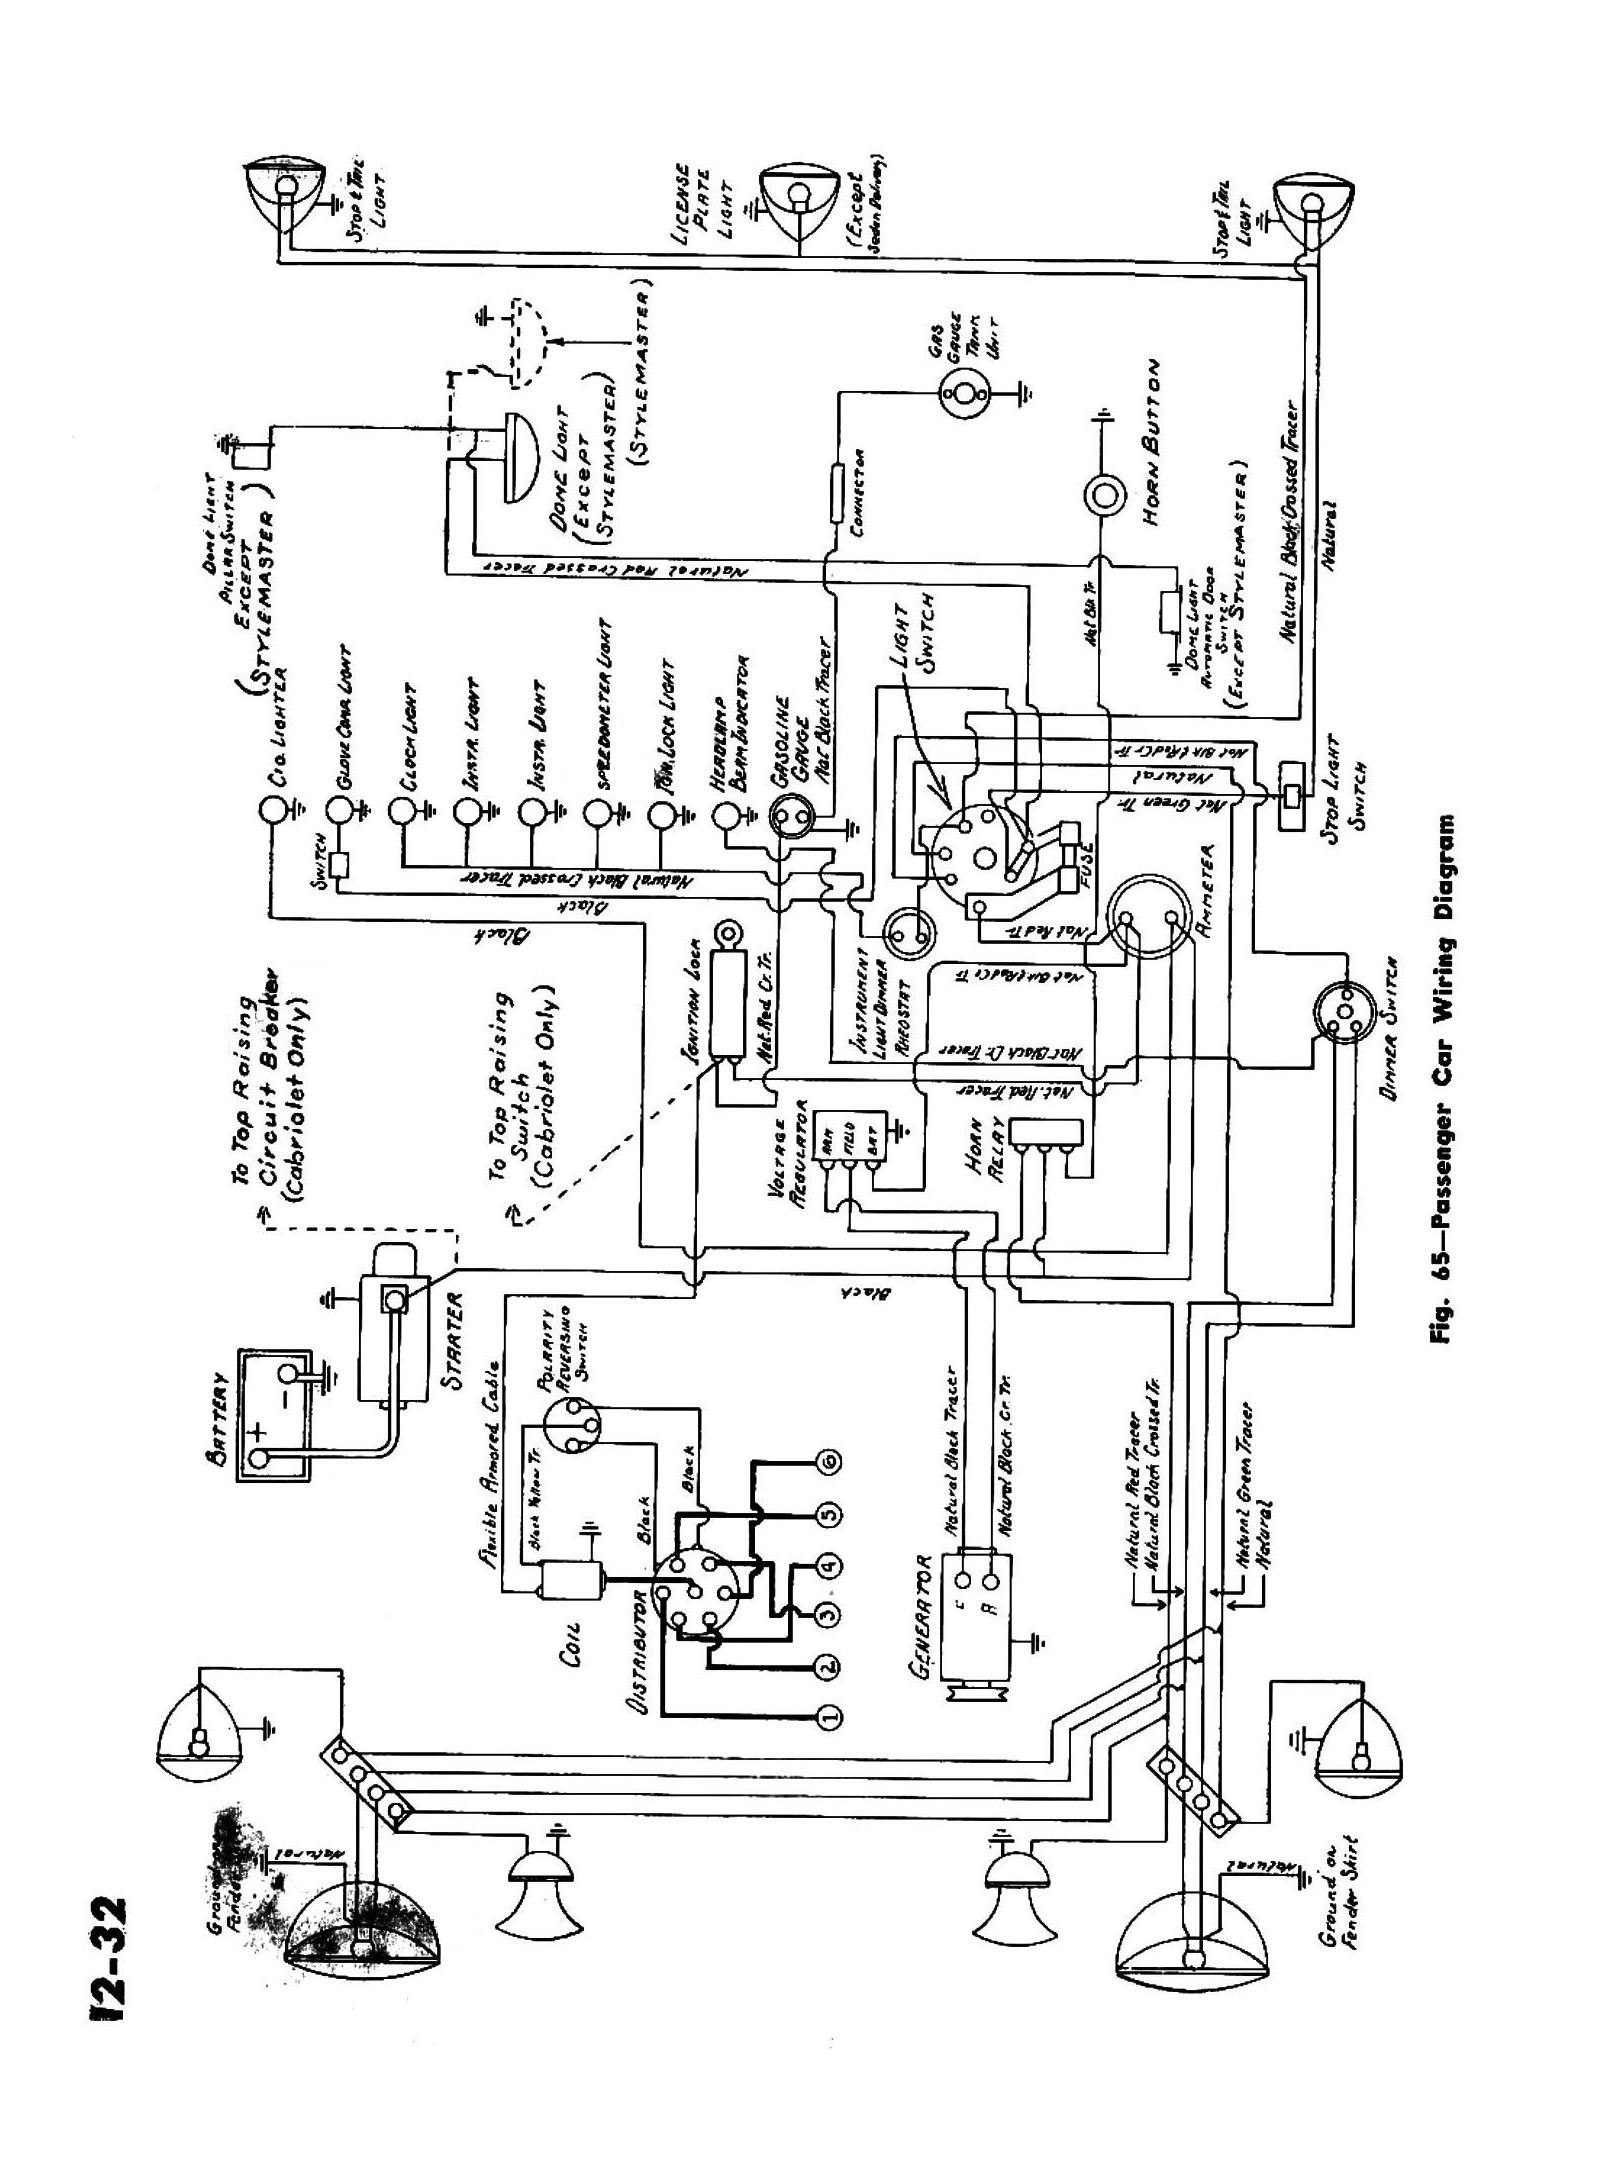 Basic Electrical Wiring Diagrams Cars | Wiring Diagram Liries on understanding schematics auto mobile, automotive pcm diagrams, understanding electrical diagrams, understanding automotive electrical systems, understanding a wiring diagram,